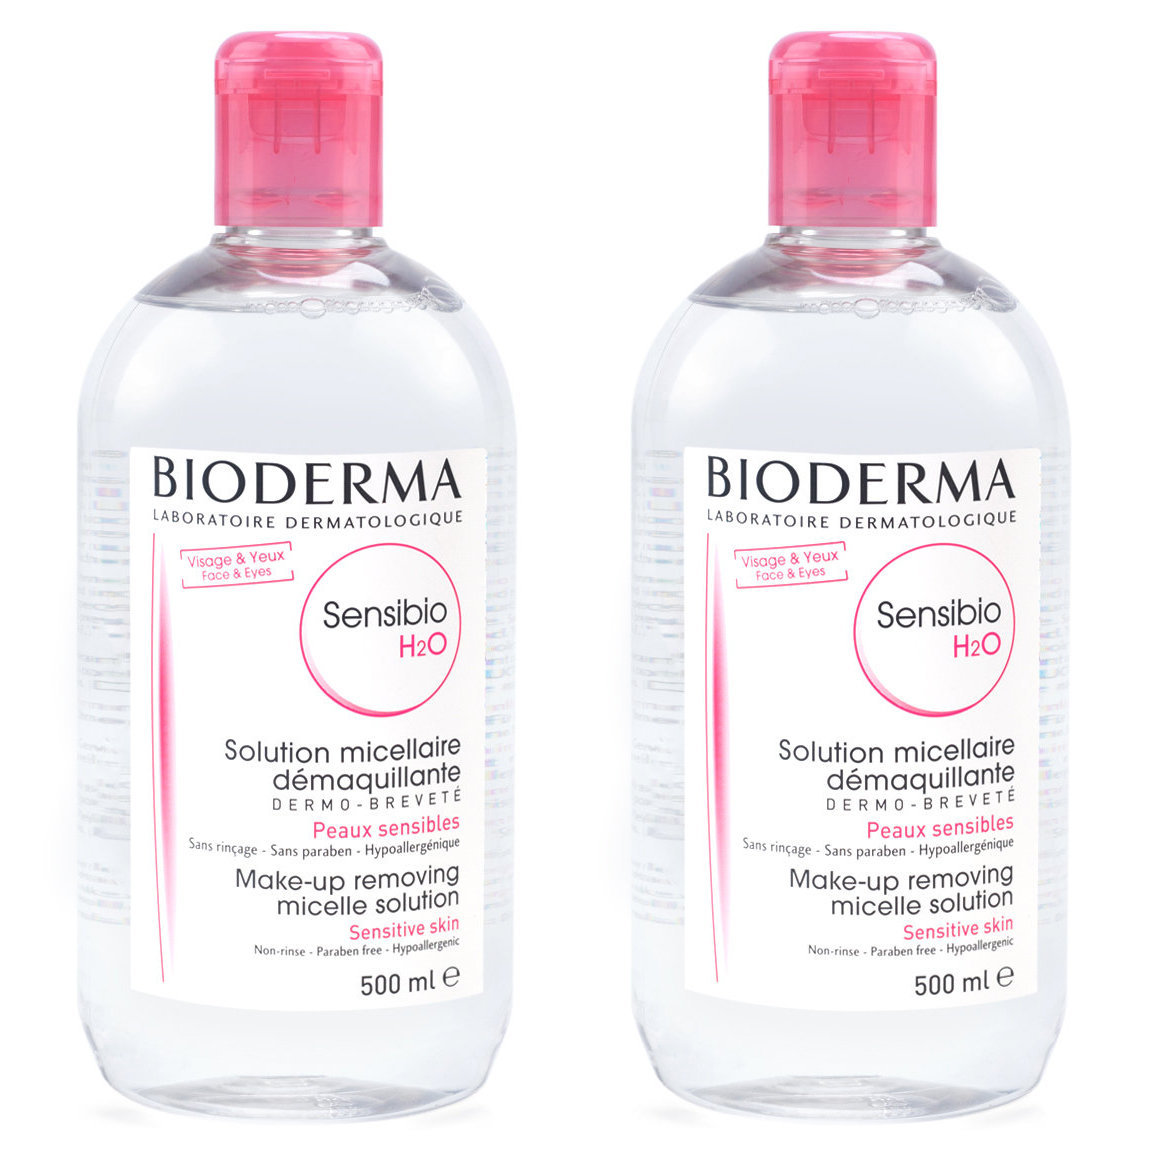 Bioderma Sensibio H2O 500 ml Duo product smear.